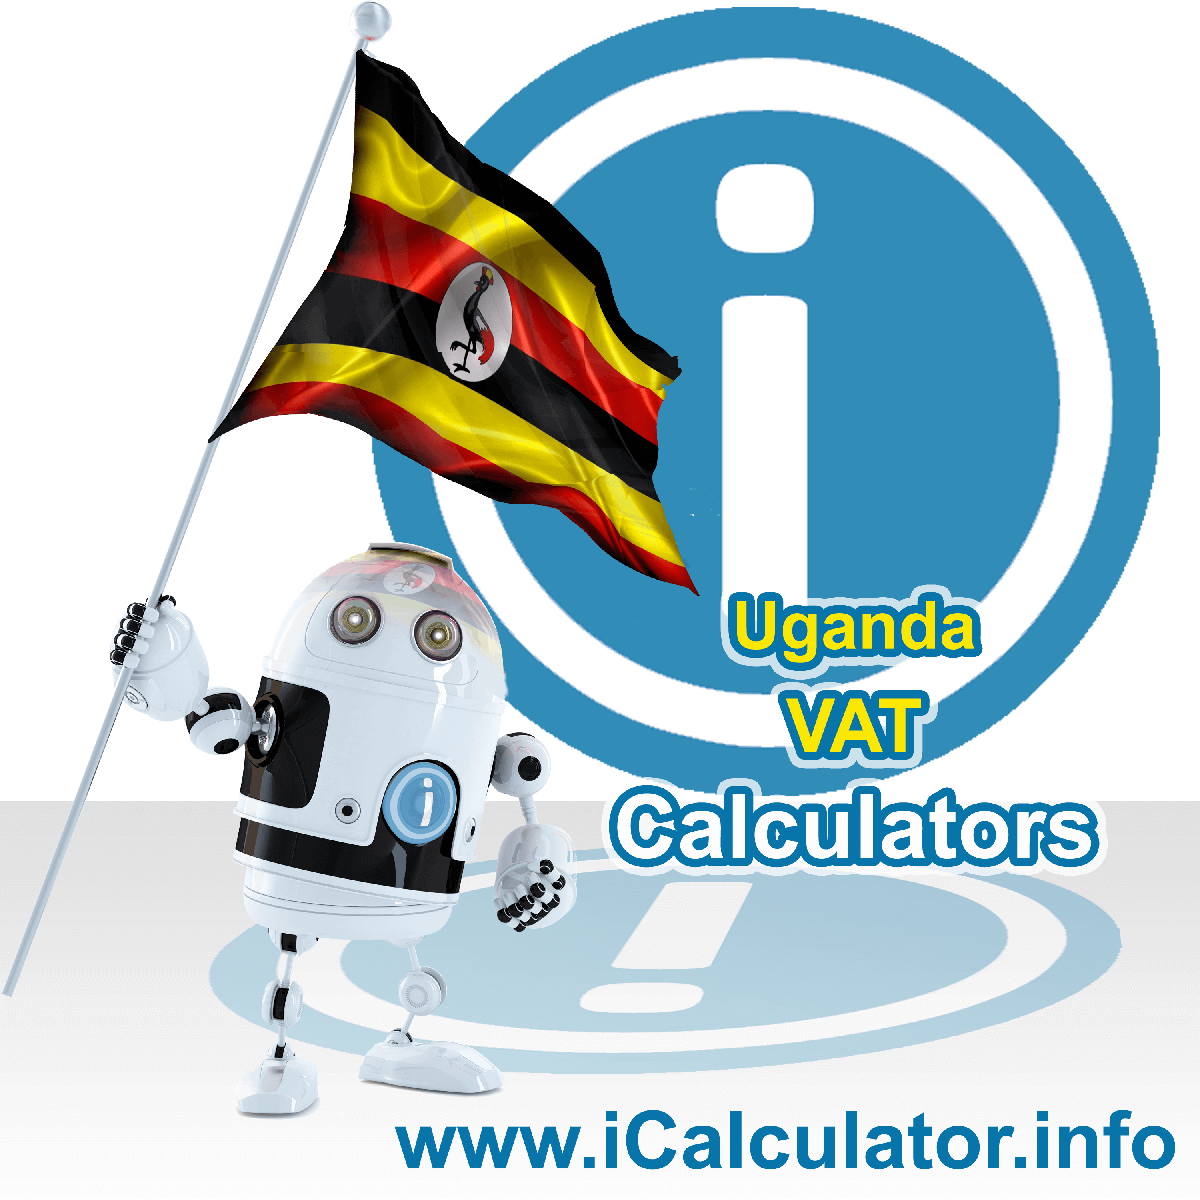 Uganda VAT Calculator. This image shows the Uganda flag and information relating to the VAT formula used for calculating Value Added Tax in Uganda using the Uganda VAT Calculator in 2020